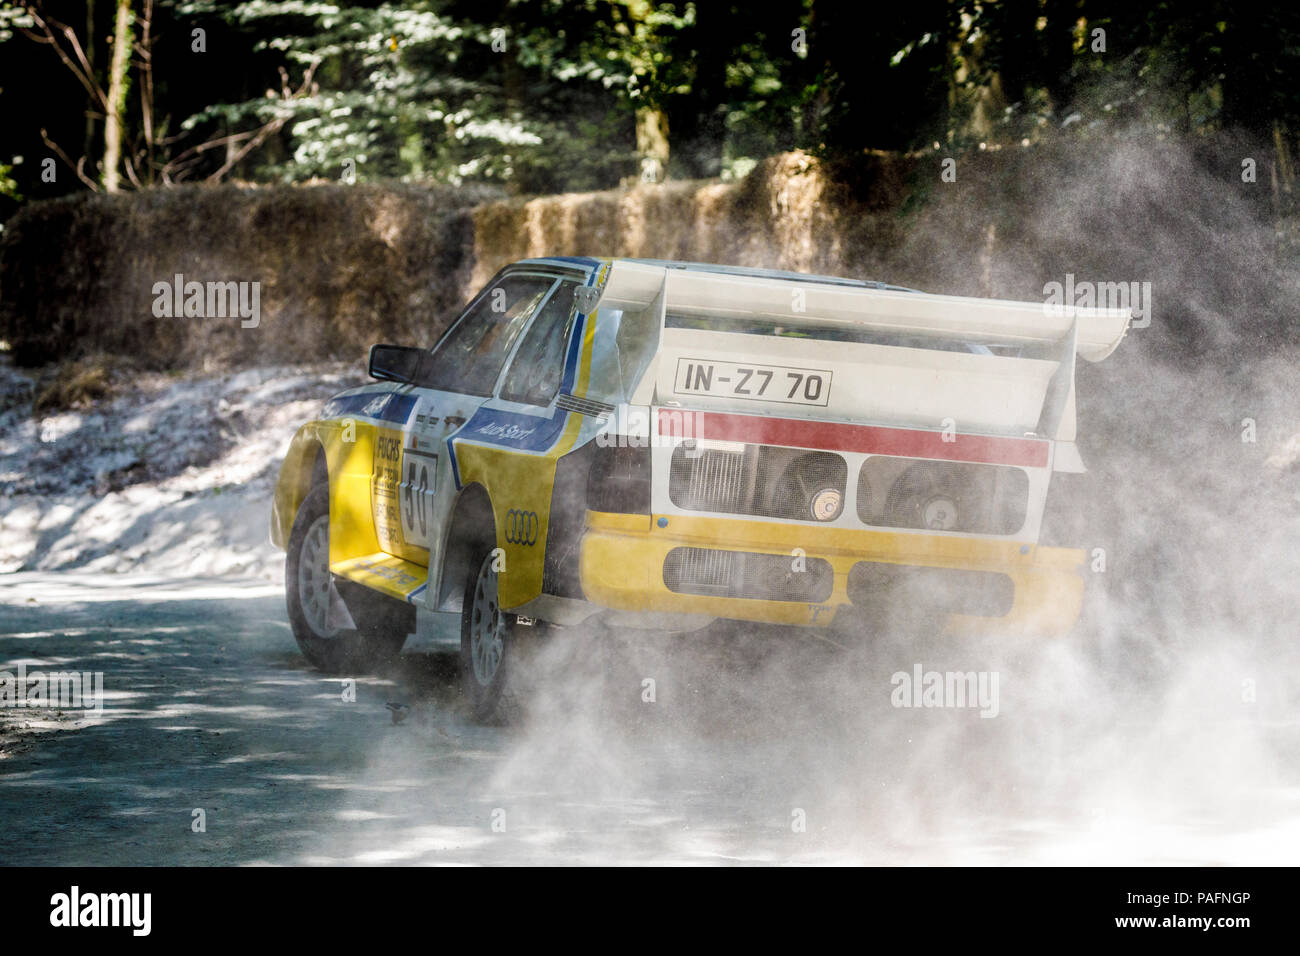 1986 Audi Quattro S1 E2 Group B rally car with driver Janice Magee on the forest stage at the 2018 Goodwood Festival of Speed, Sussex, UK. - Stock Image